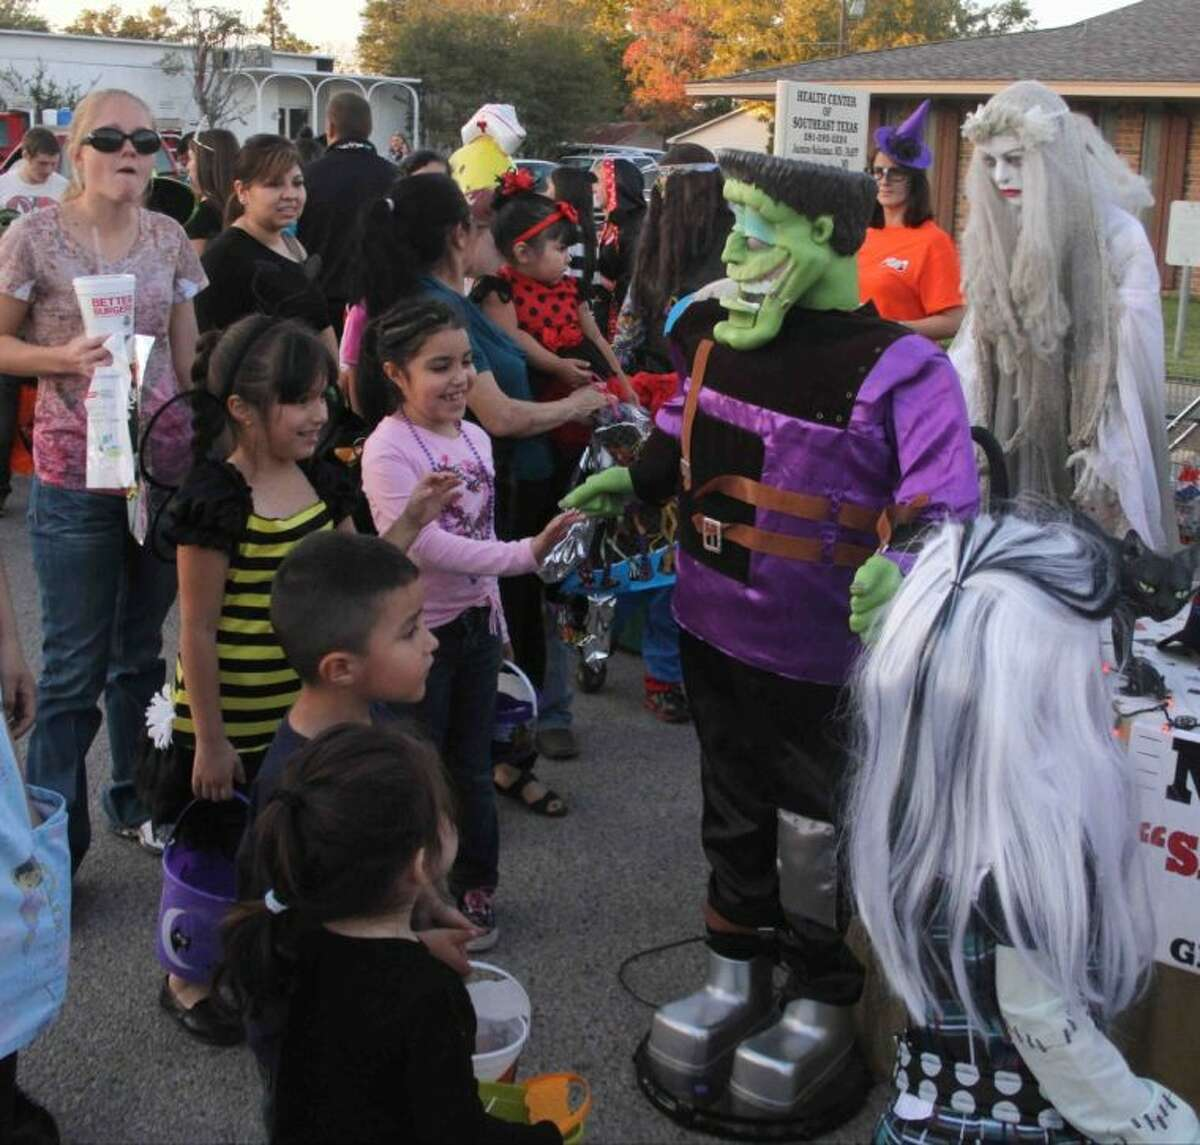 Kids enjoyed a safe Halloween experience at Treat Street in Cleveland on Oct. 31, 2012. The annual event sponsored by the Unity Committee of Cleveland is moving to Stancil Park in order to provide a safer venue for the children.